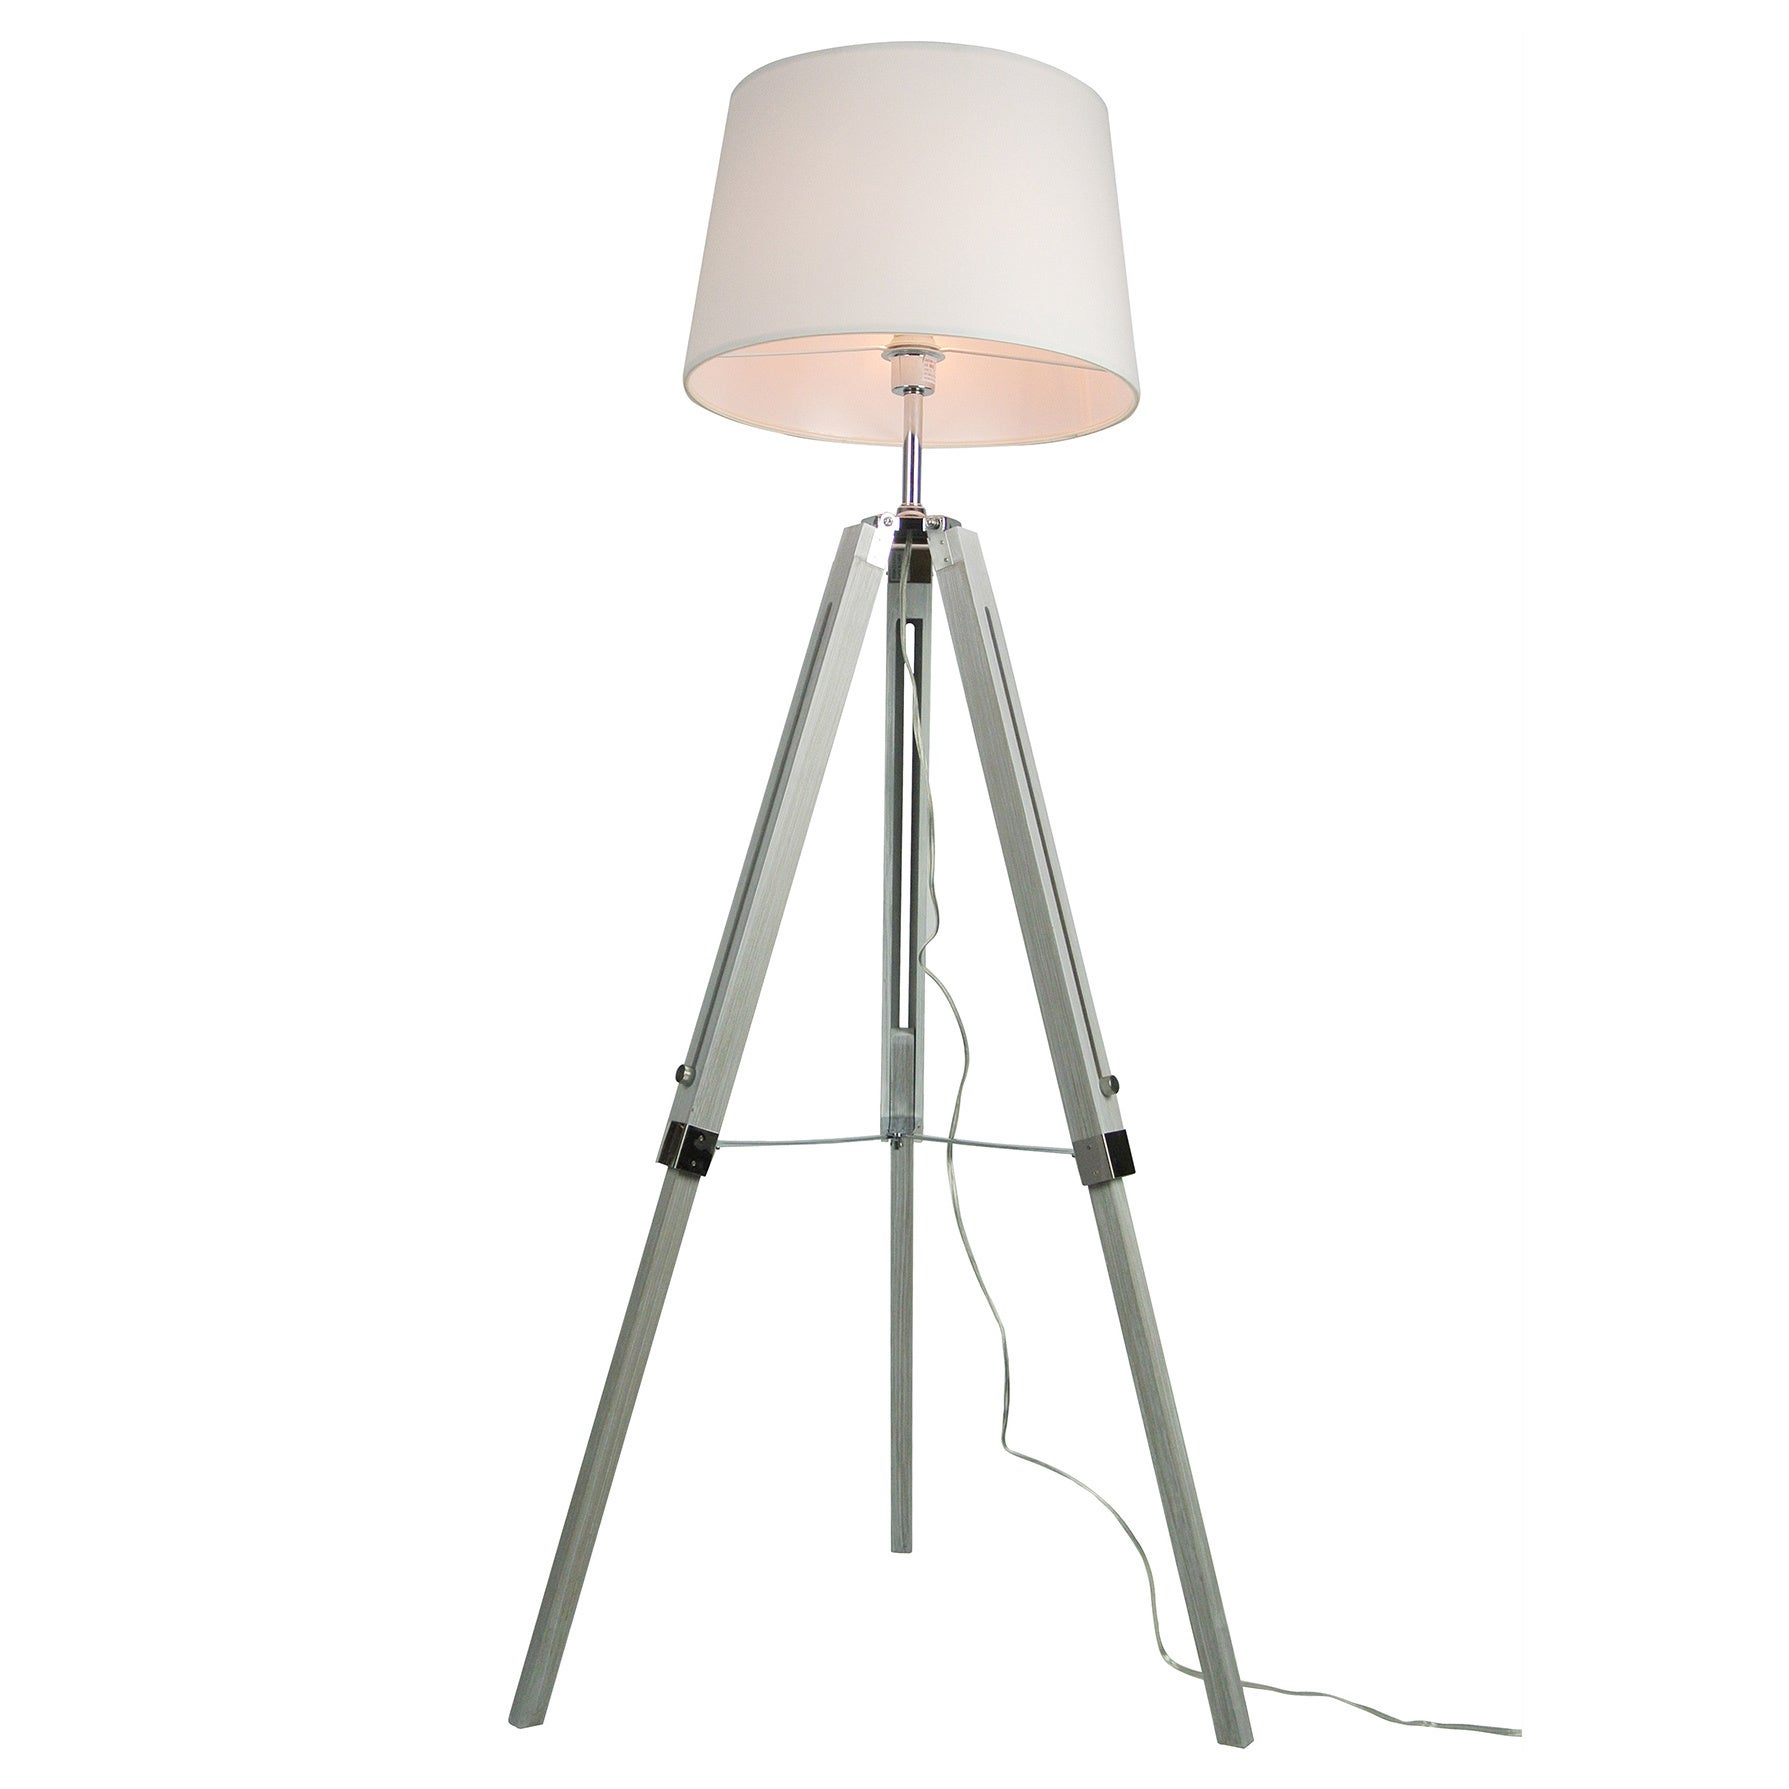 Shop Euro Style Collection Rome 60 Tripod Floor Lamp White Overstock 14356341